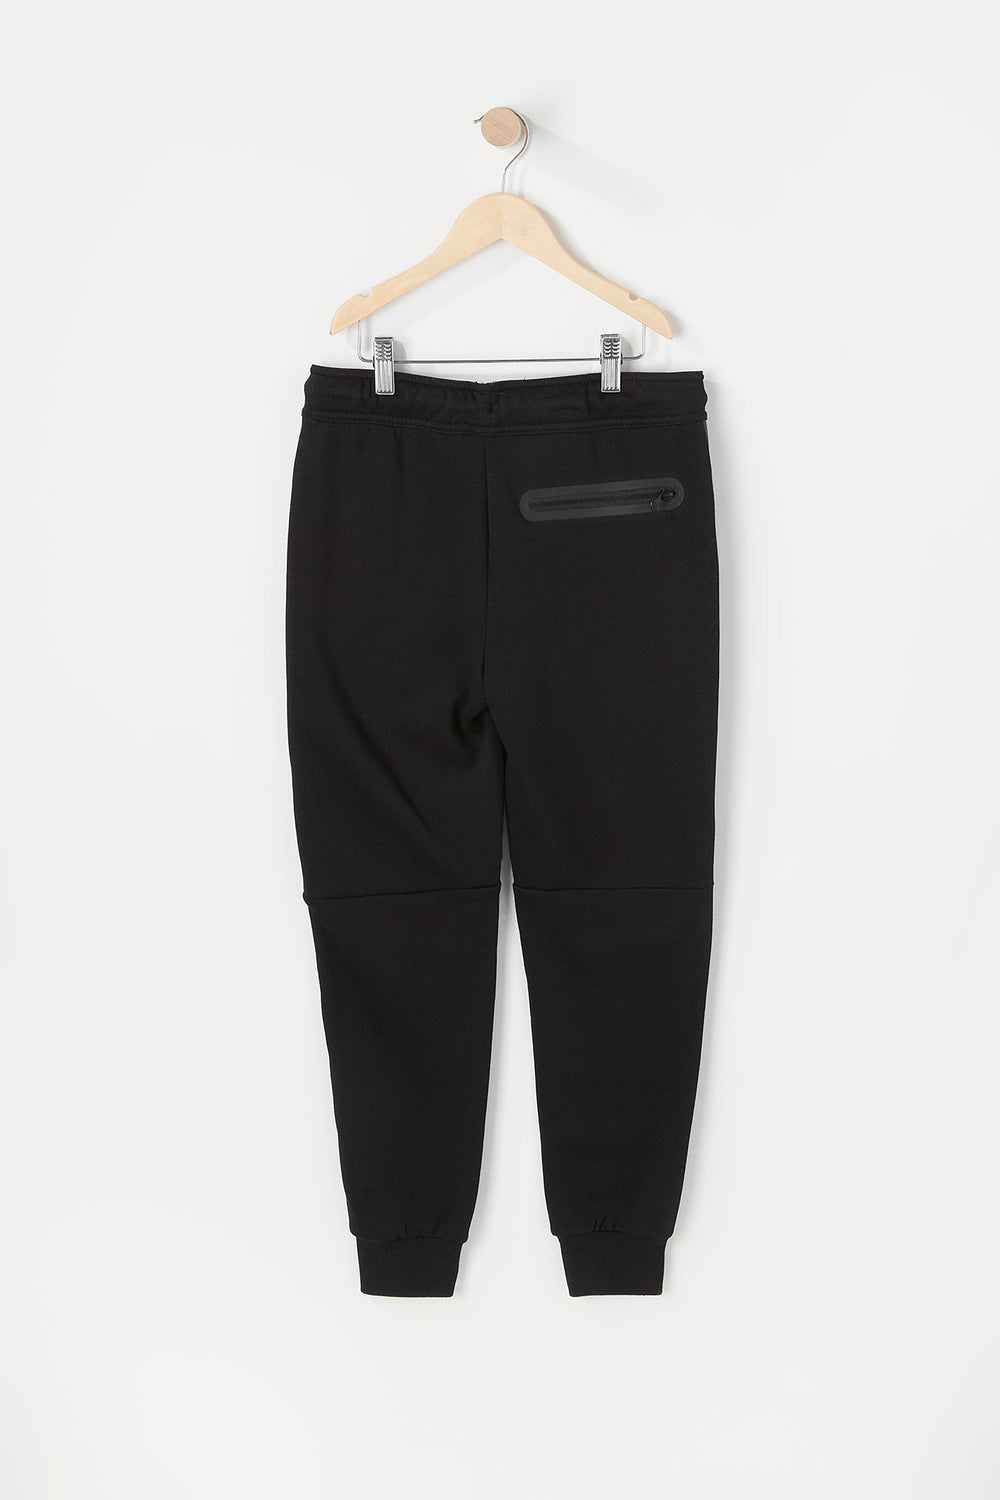 West49 Youth Spacedye Jogger Black